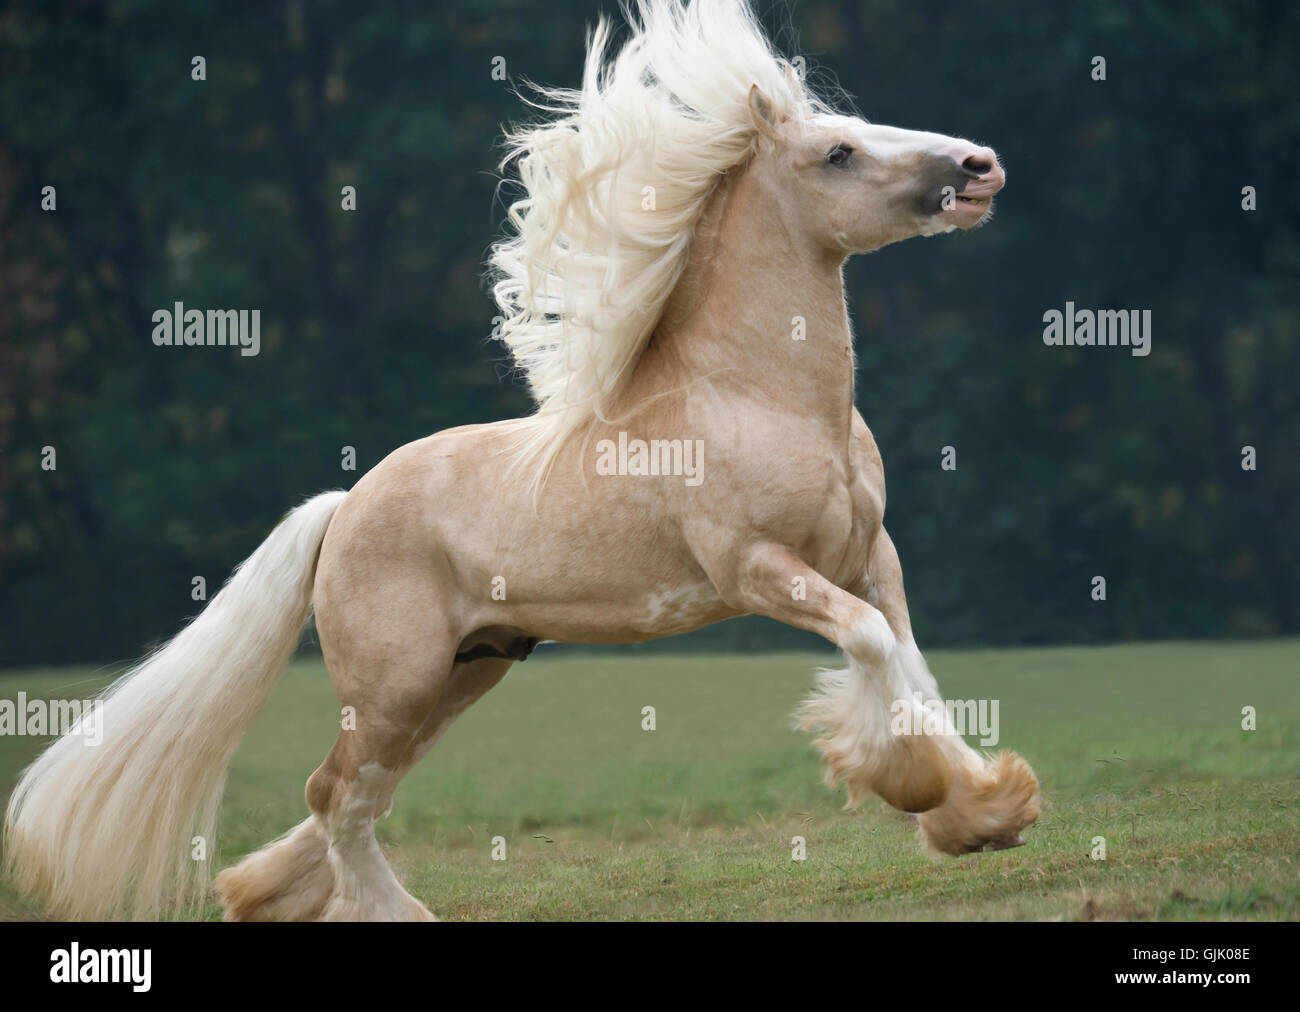 Palomino Gypsy Vanner Horse stallion bucks and runs in grass paddock - Stock Image